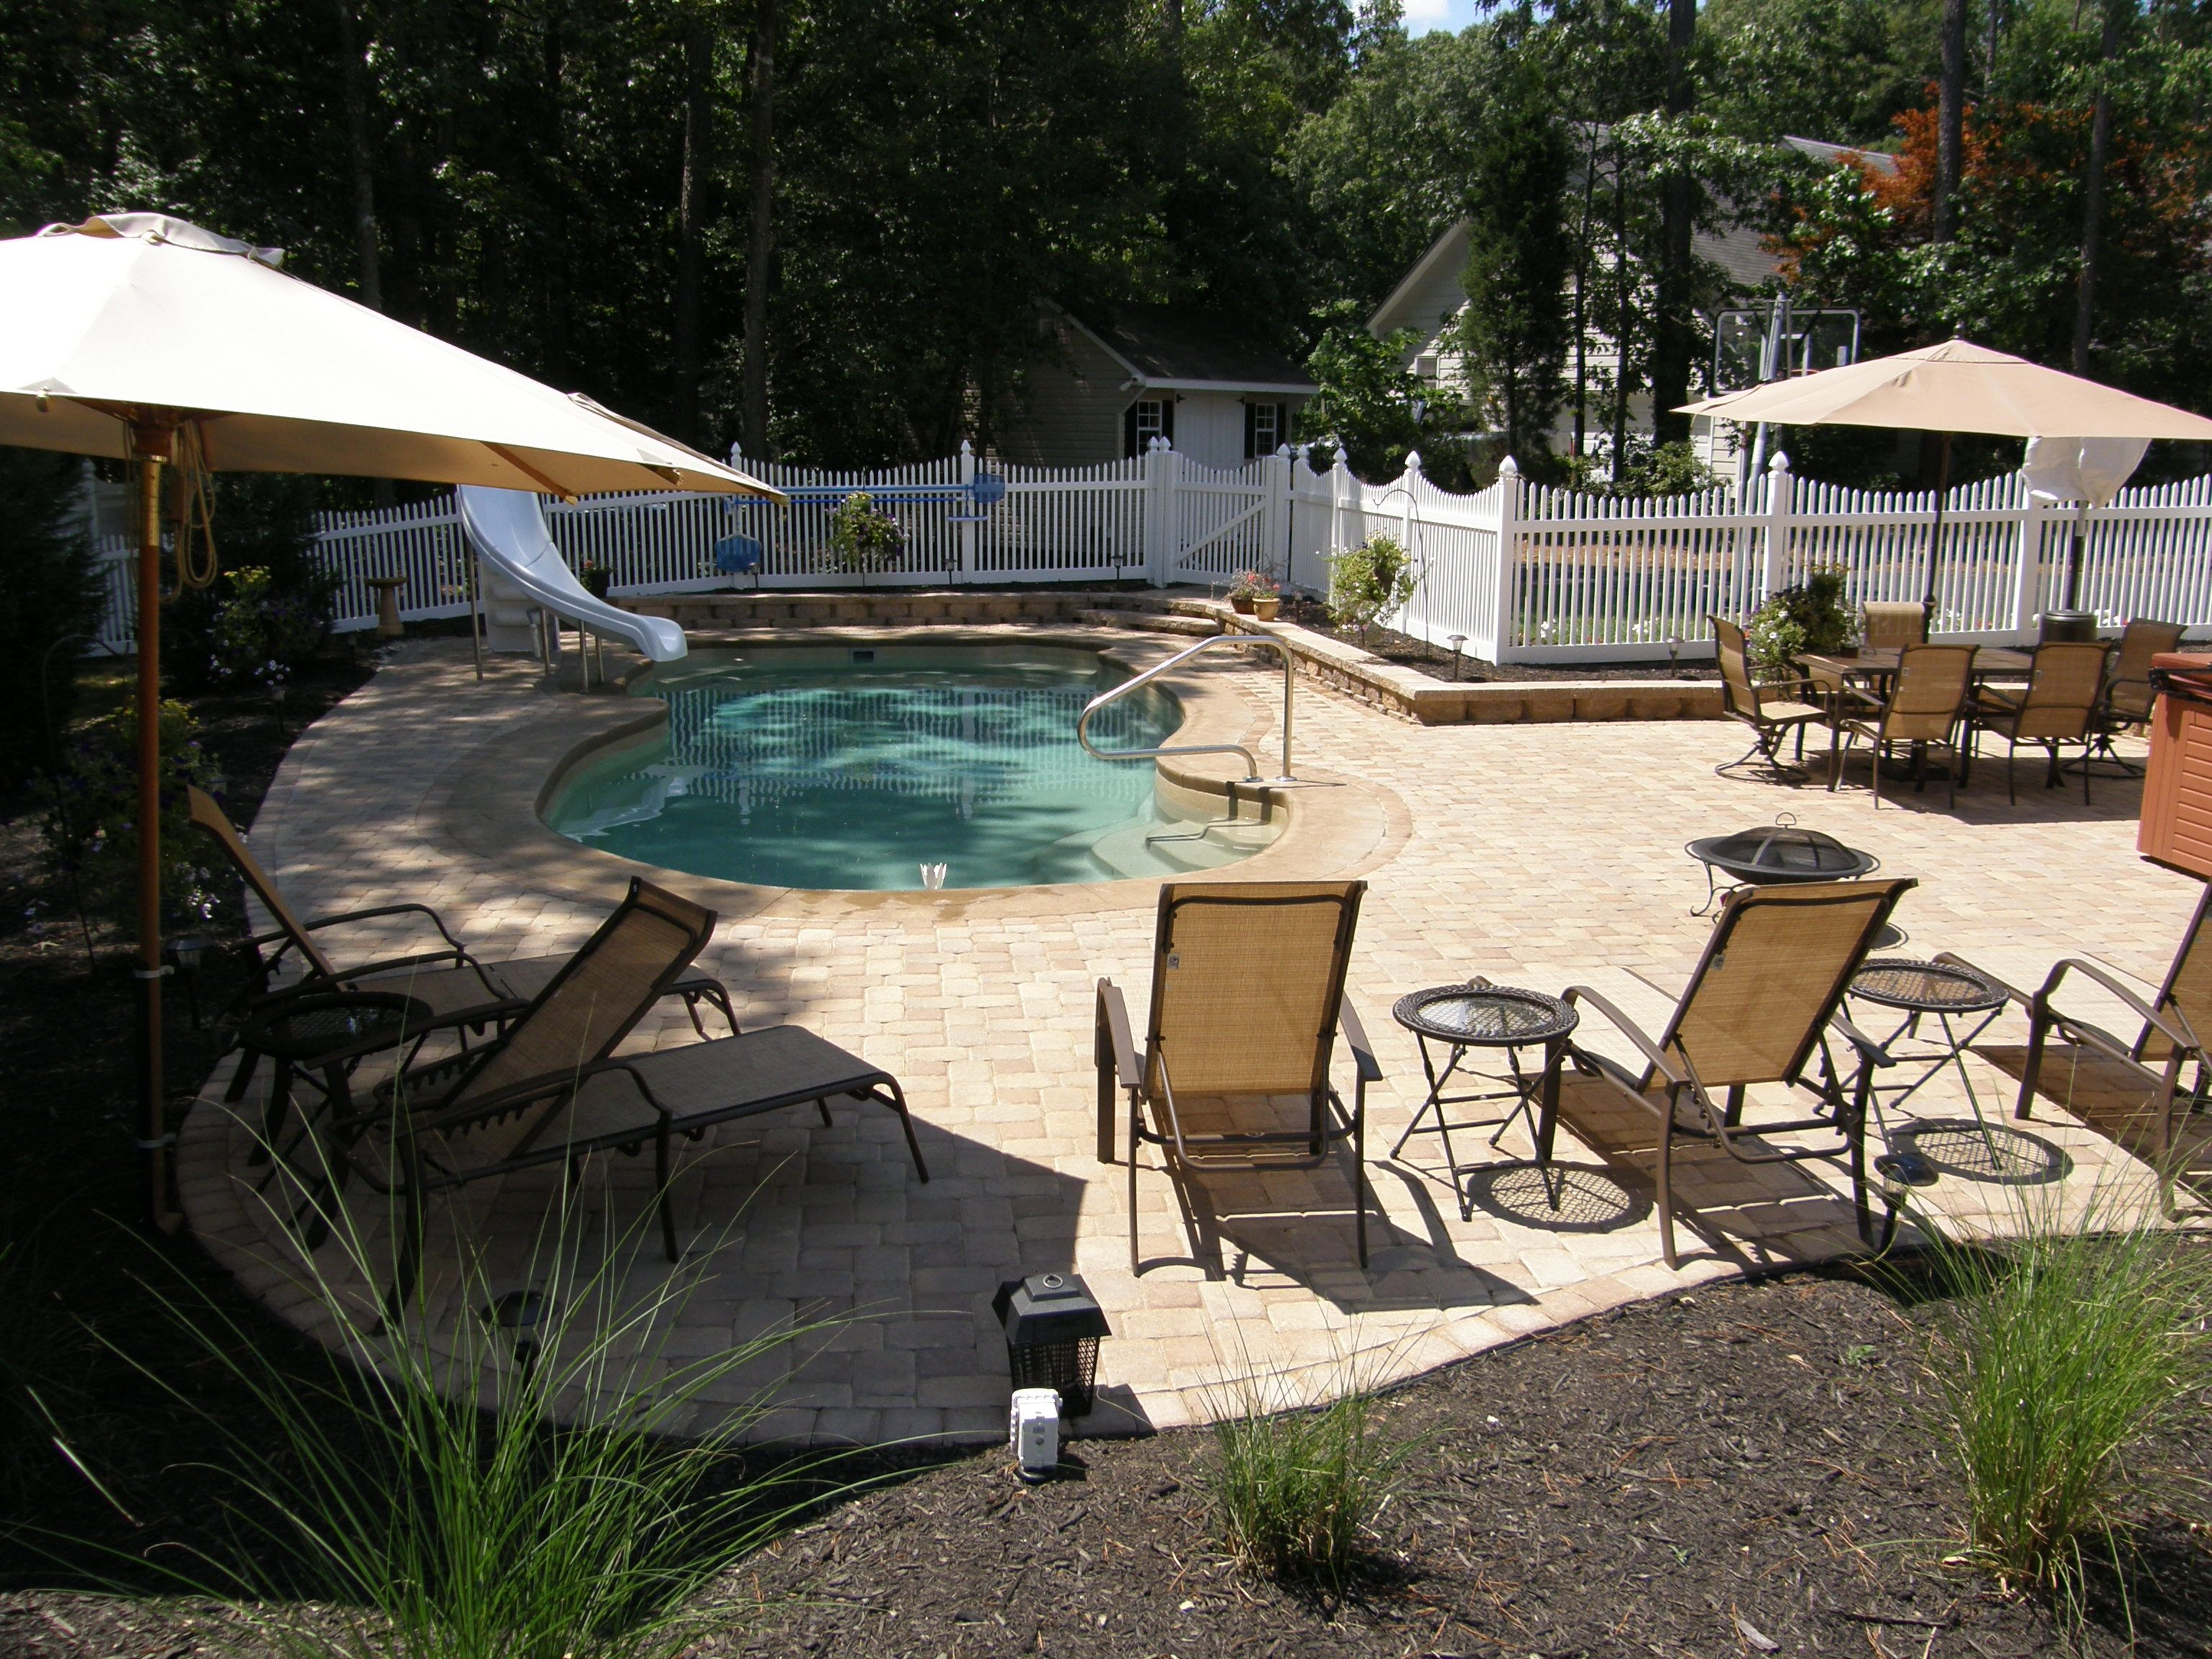 Pool Patio Materials Stamped Concrete Vs Pavers Pools Pool